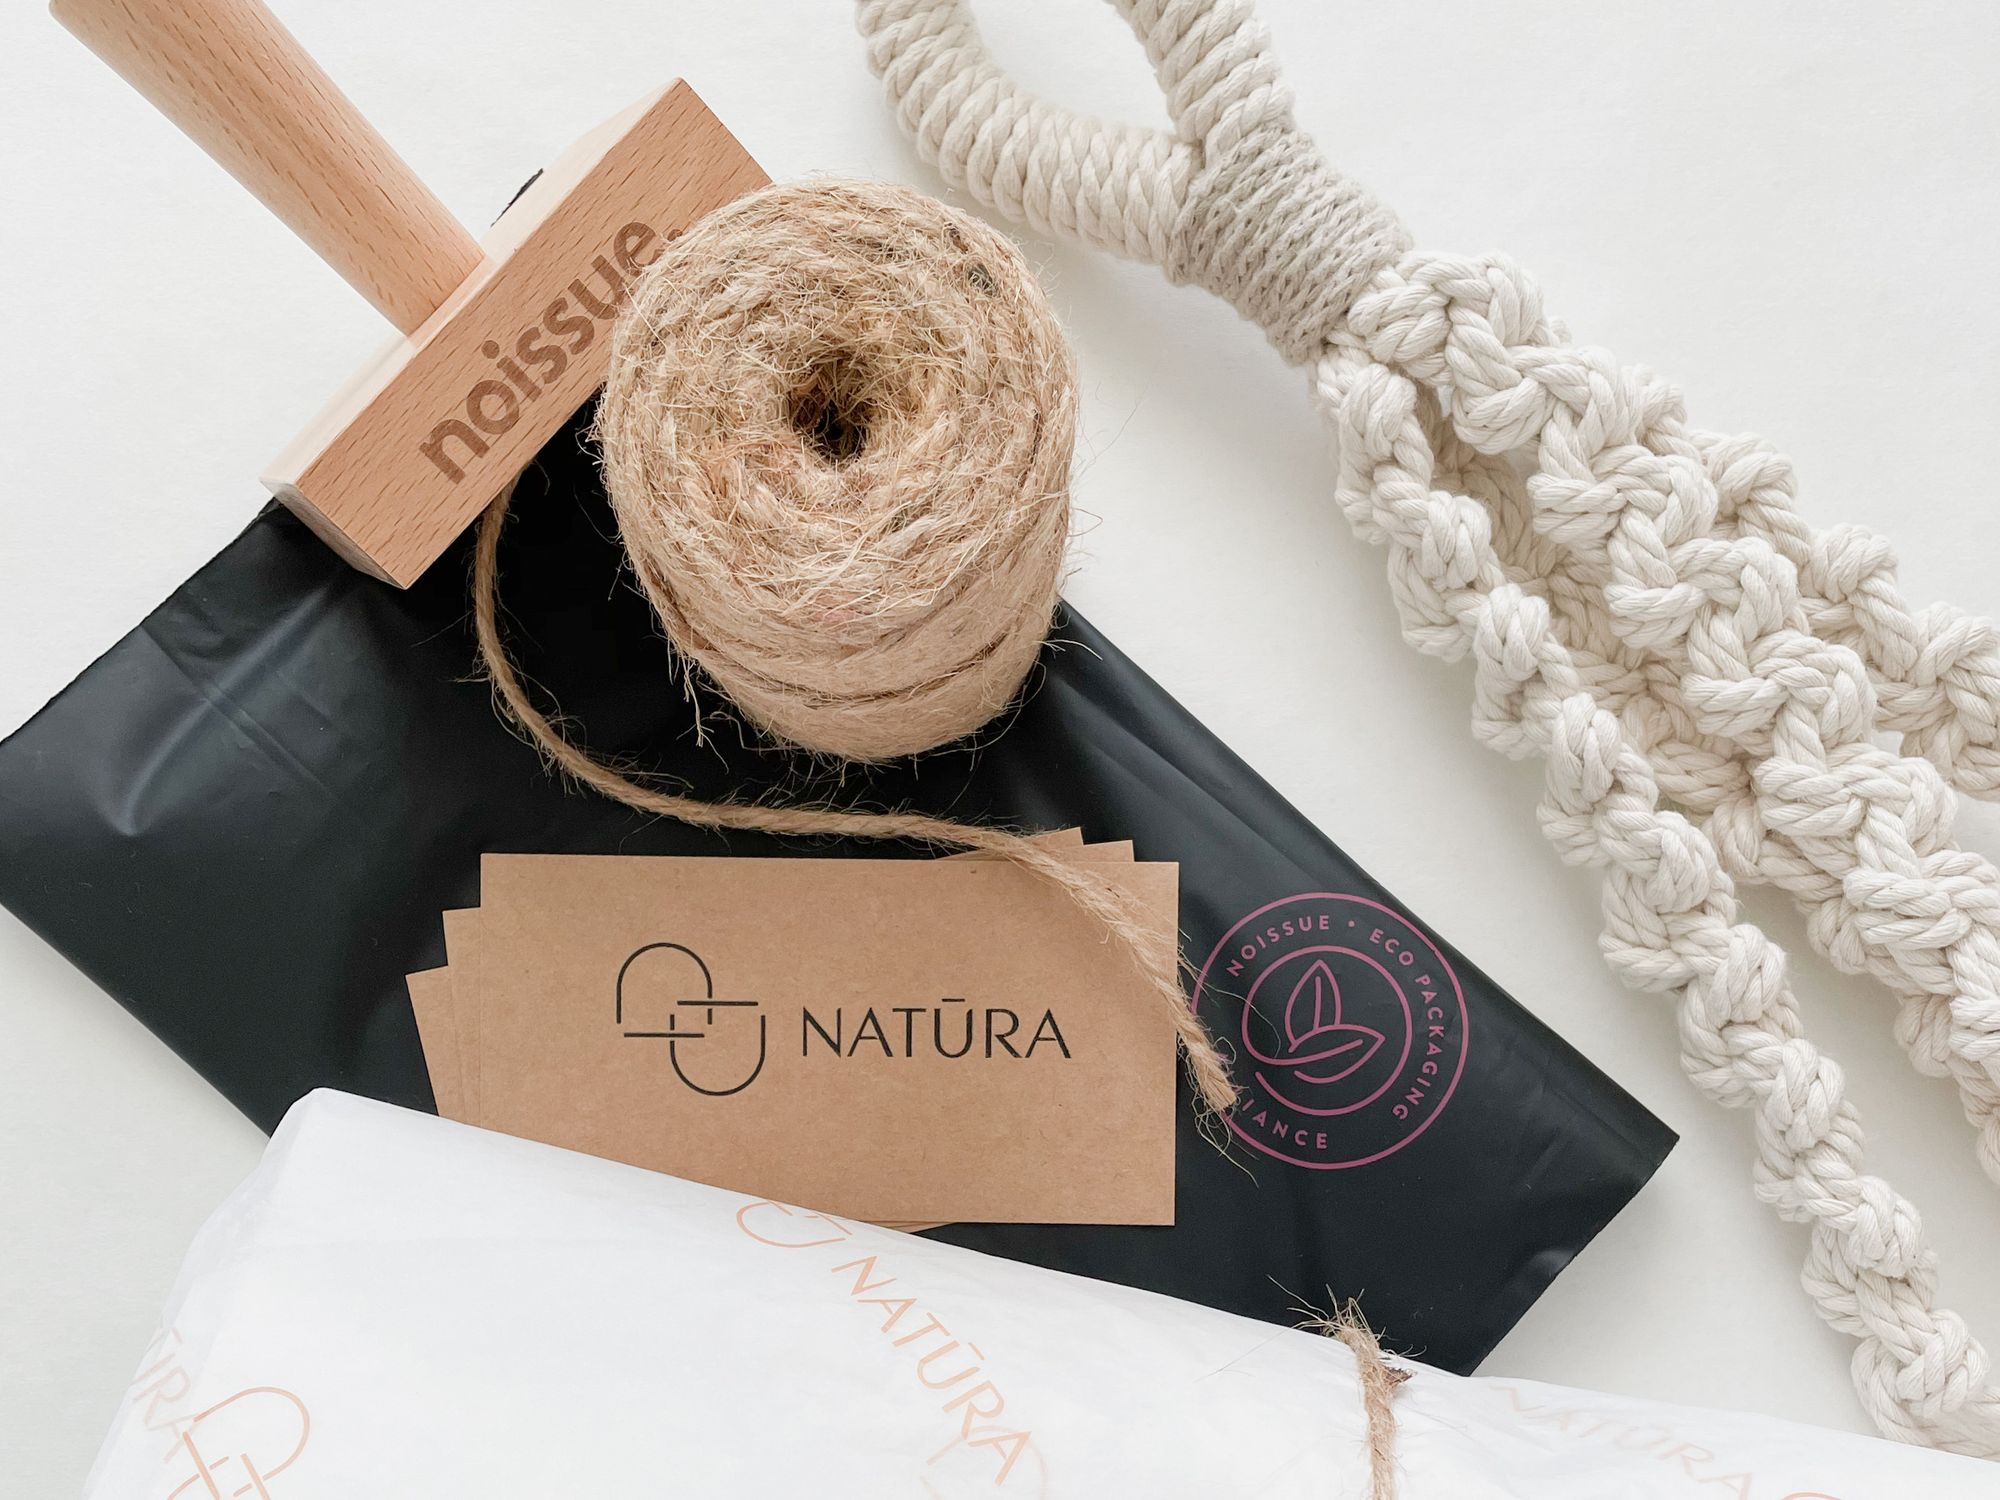 Natūra: Decorative Pieces Committed to the Well-being of the Planet